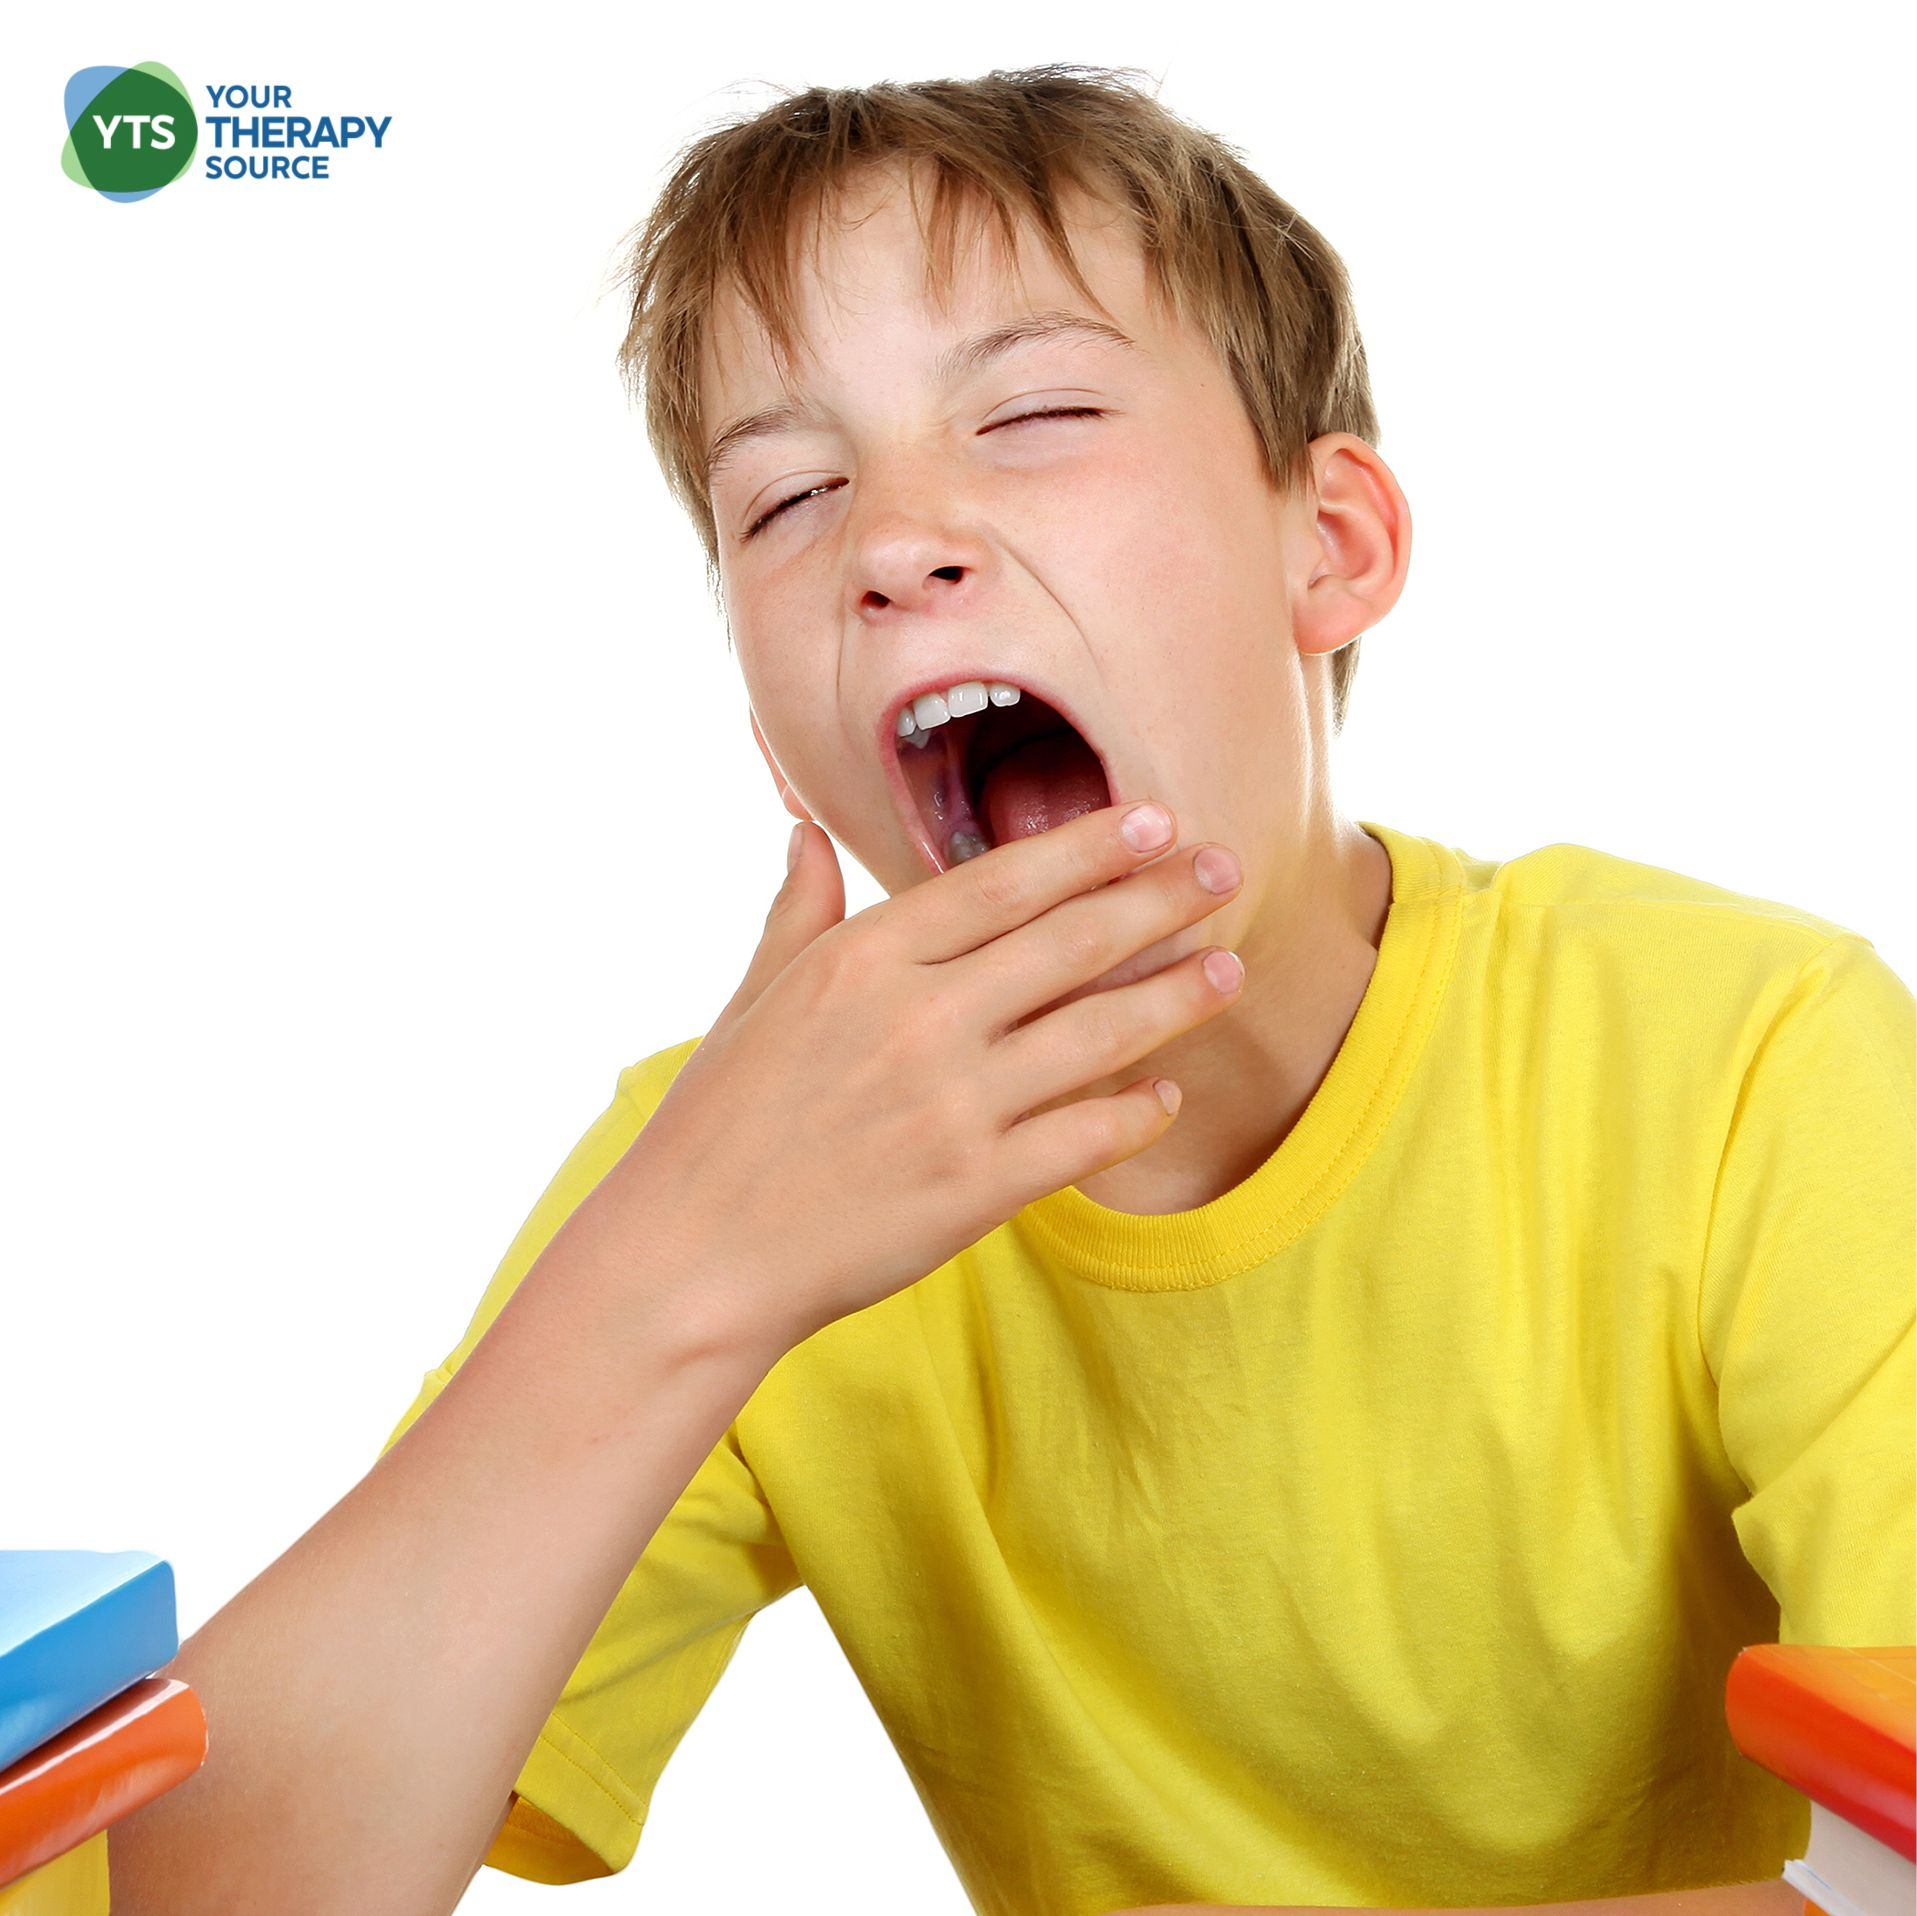 Sluggish Cognitive Tempo in children includes behaviors such as being slow to complete tasks, easily confused, mentally foggy, drowsiness, frequently lost in thought, inactivity, decreased effort over time, and/or lacking initiative. It may sound similar to inattentive ADHD and the symptoms do overlap but SCT is different.